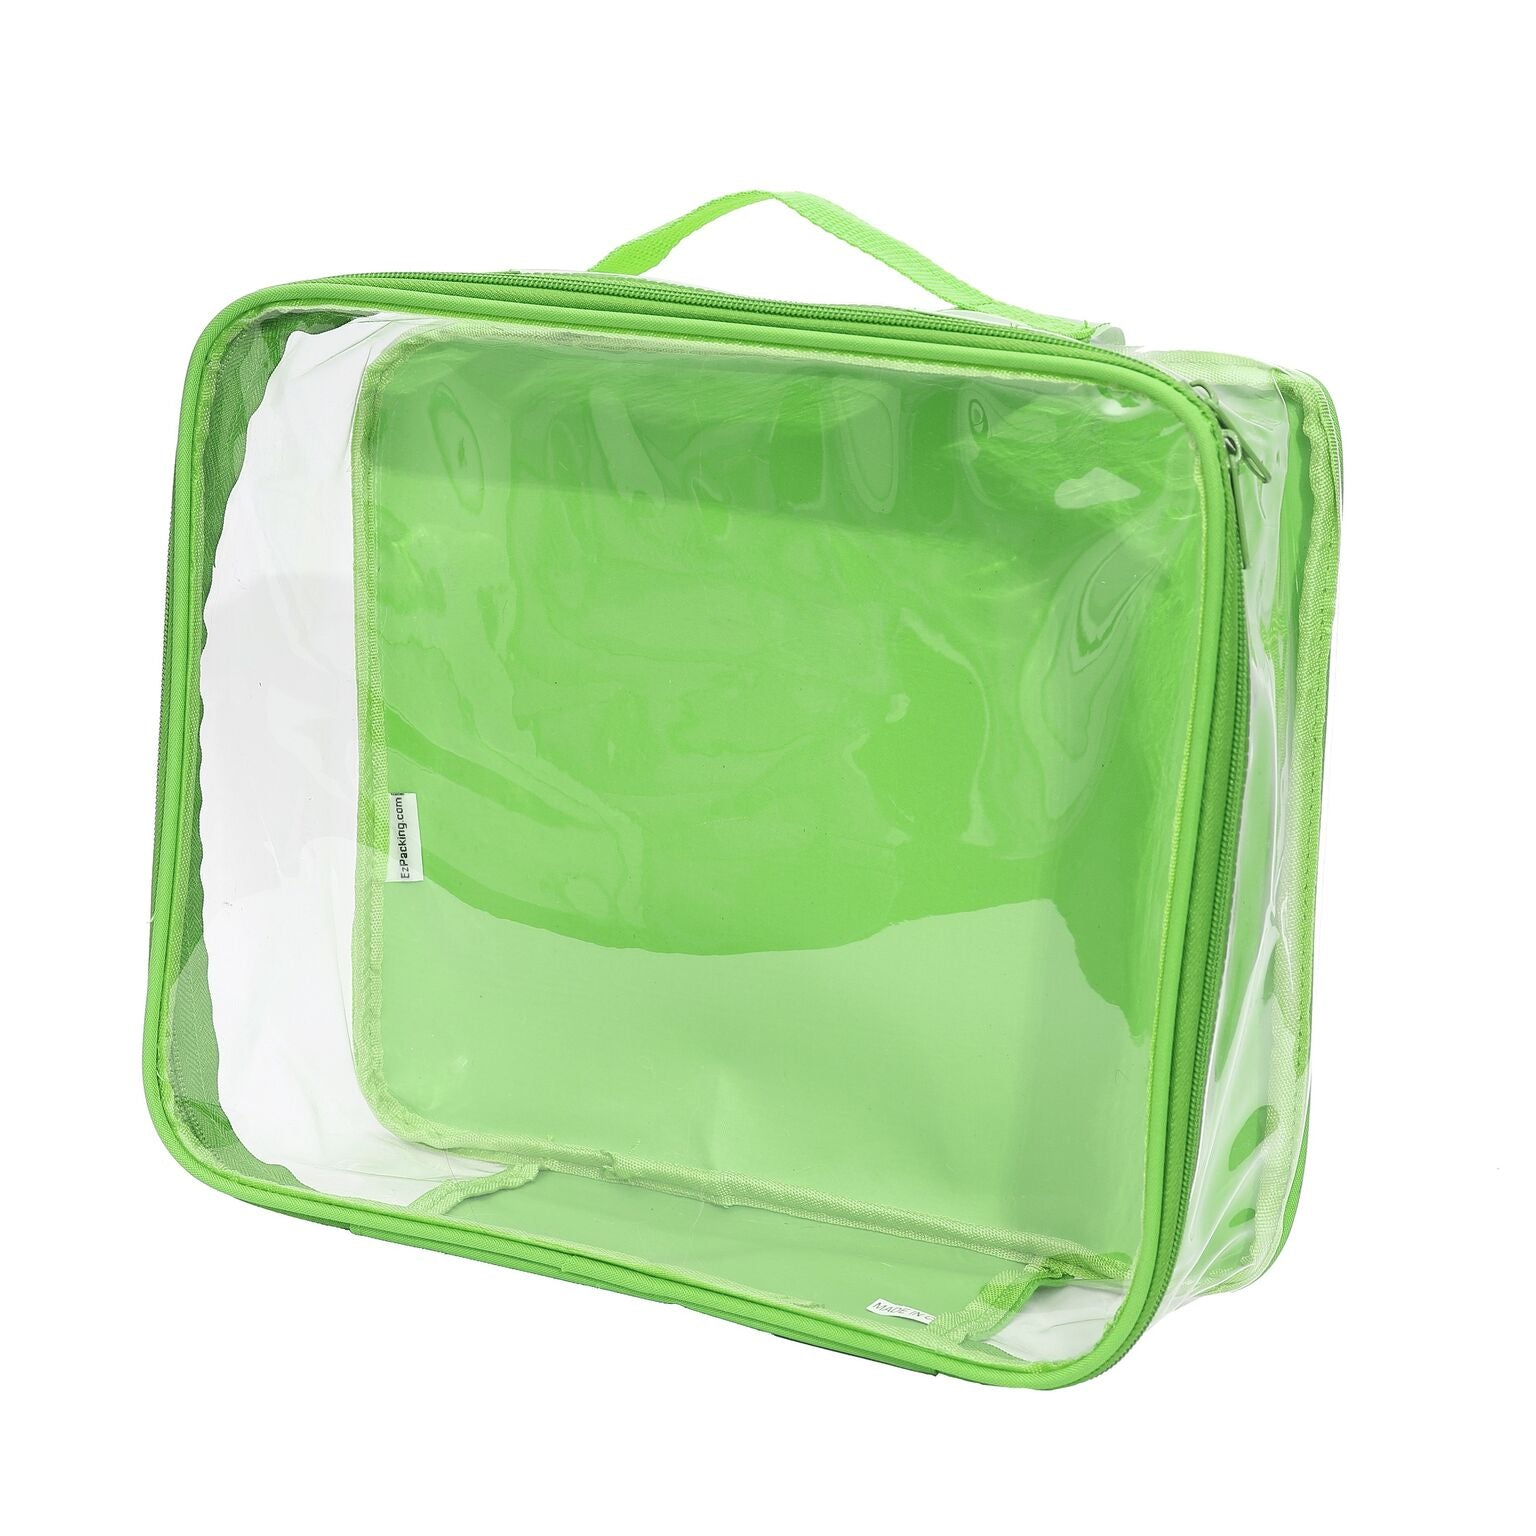 EzPacking green medium cube